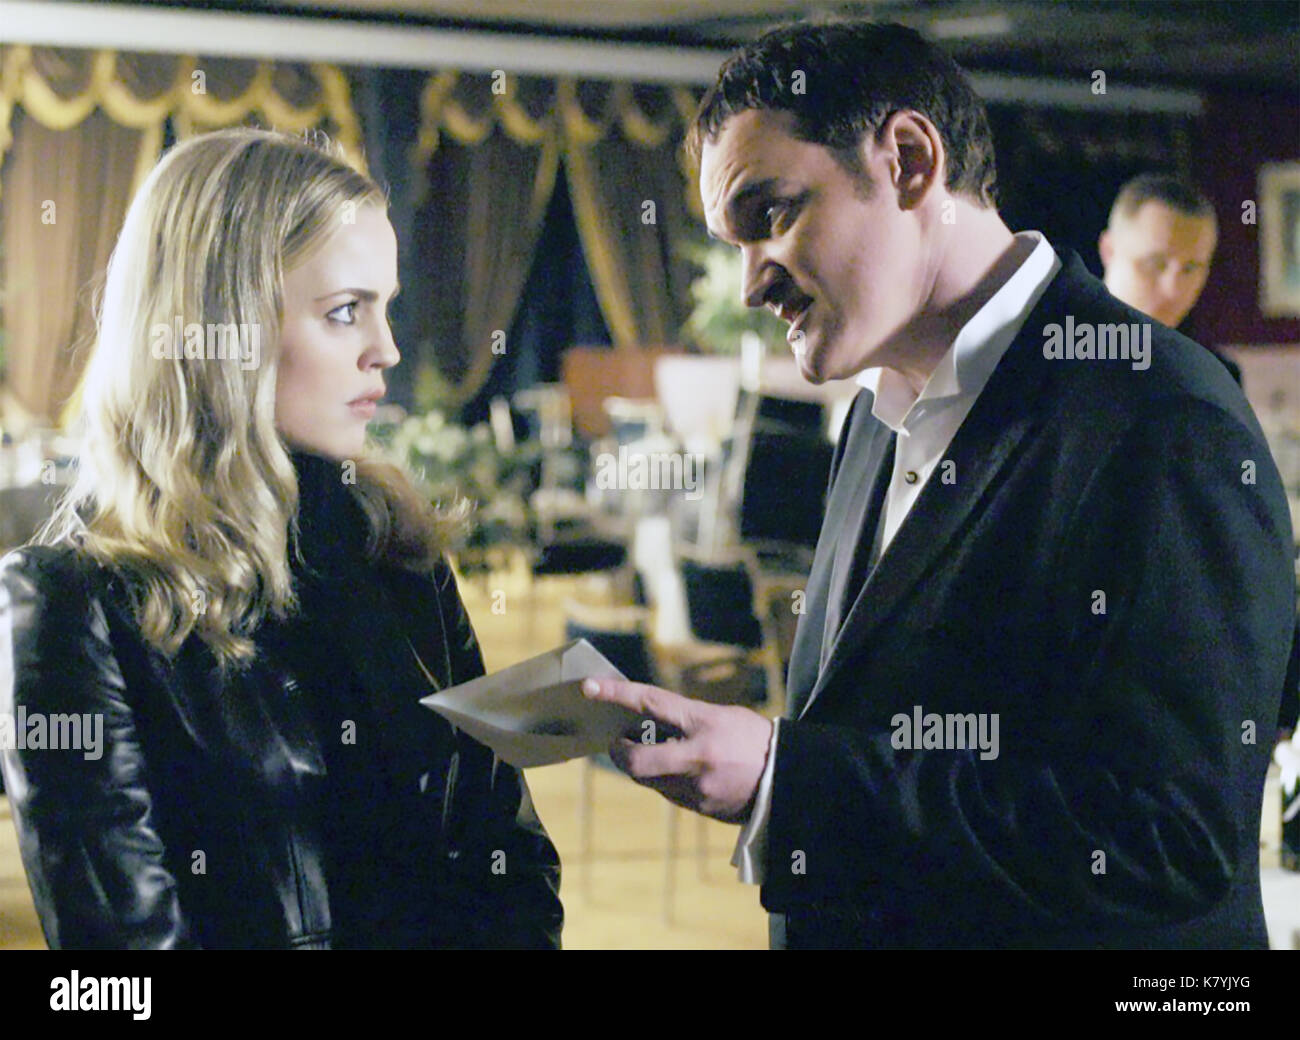 ALIAS 2001-2006 Touchstone Television series with Melissa George and Quentin Tarantino - Stock Image